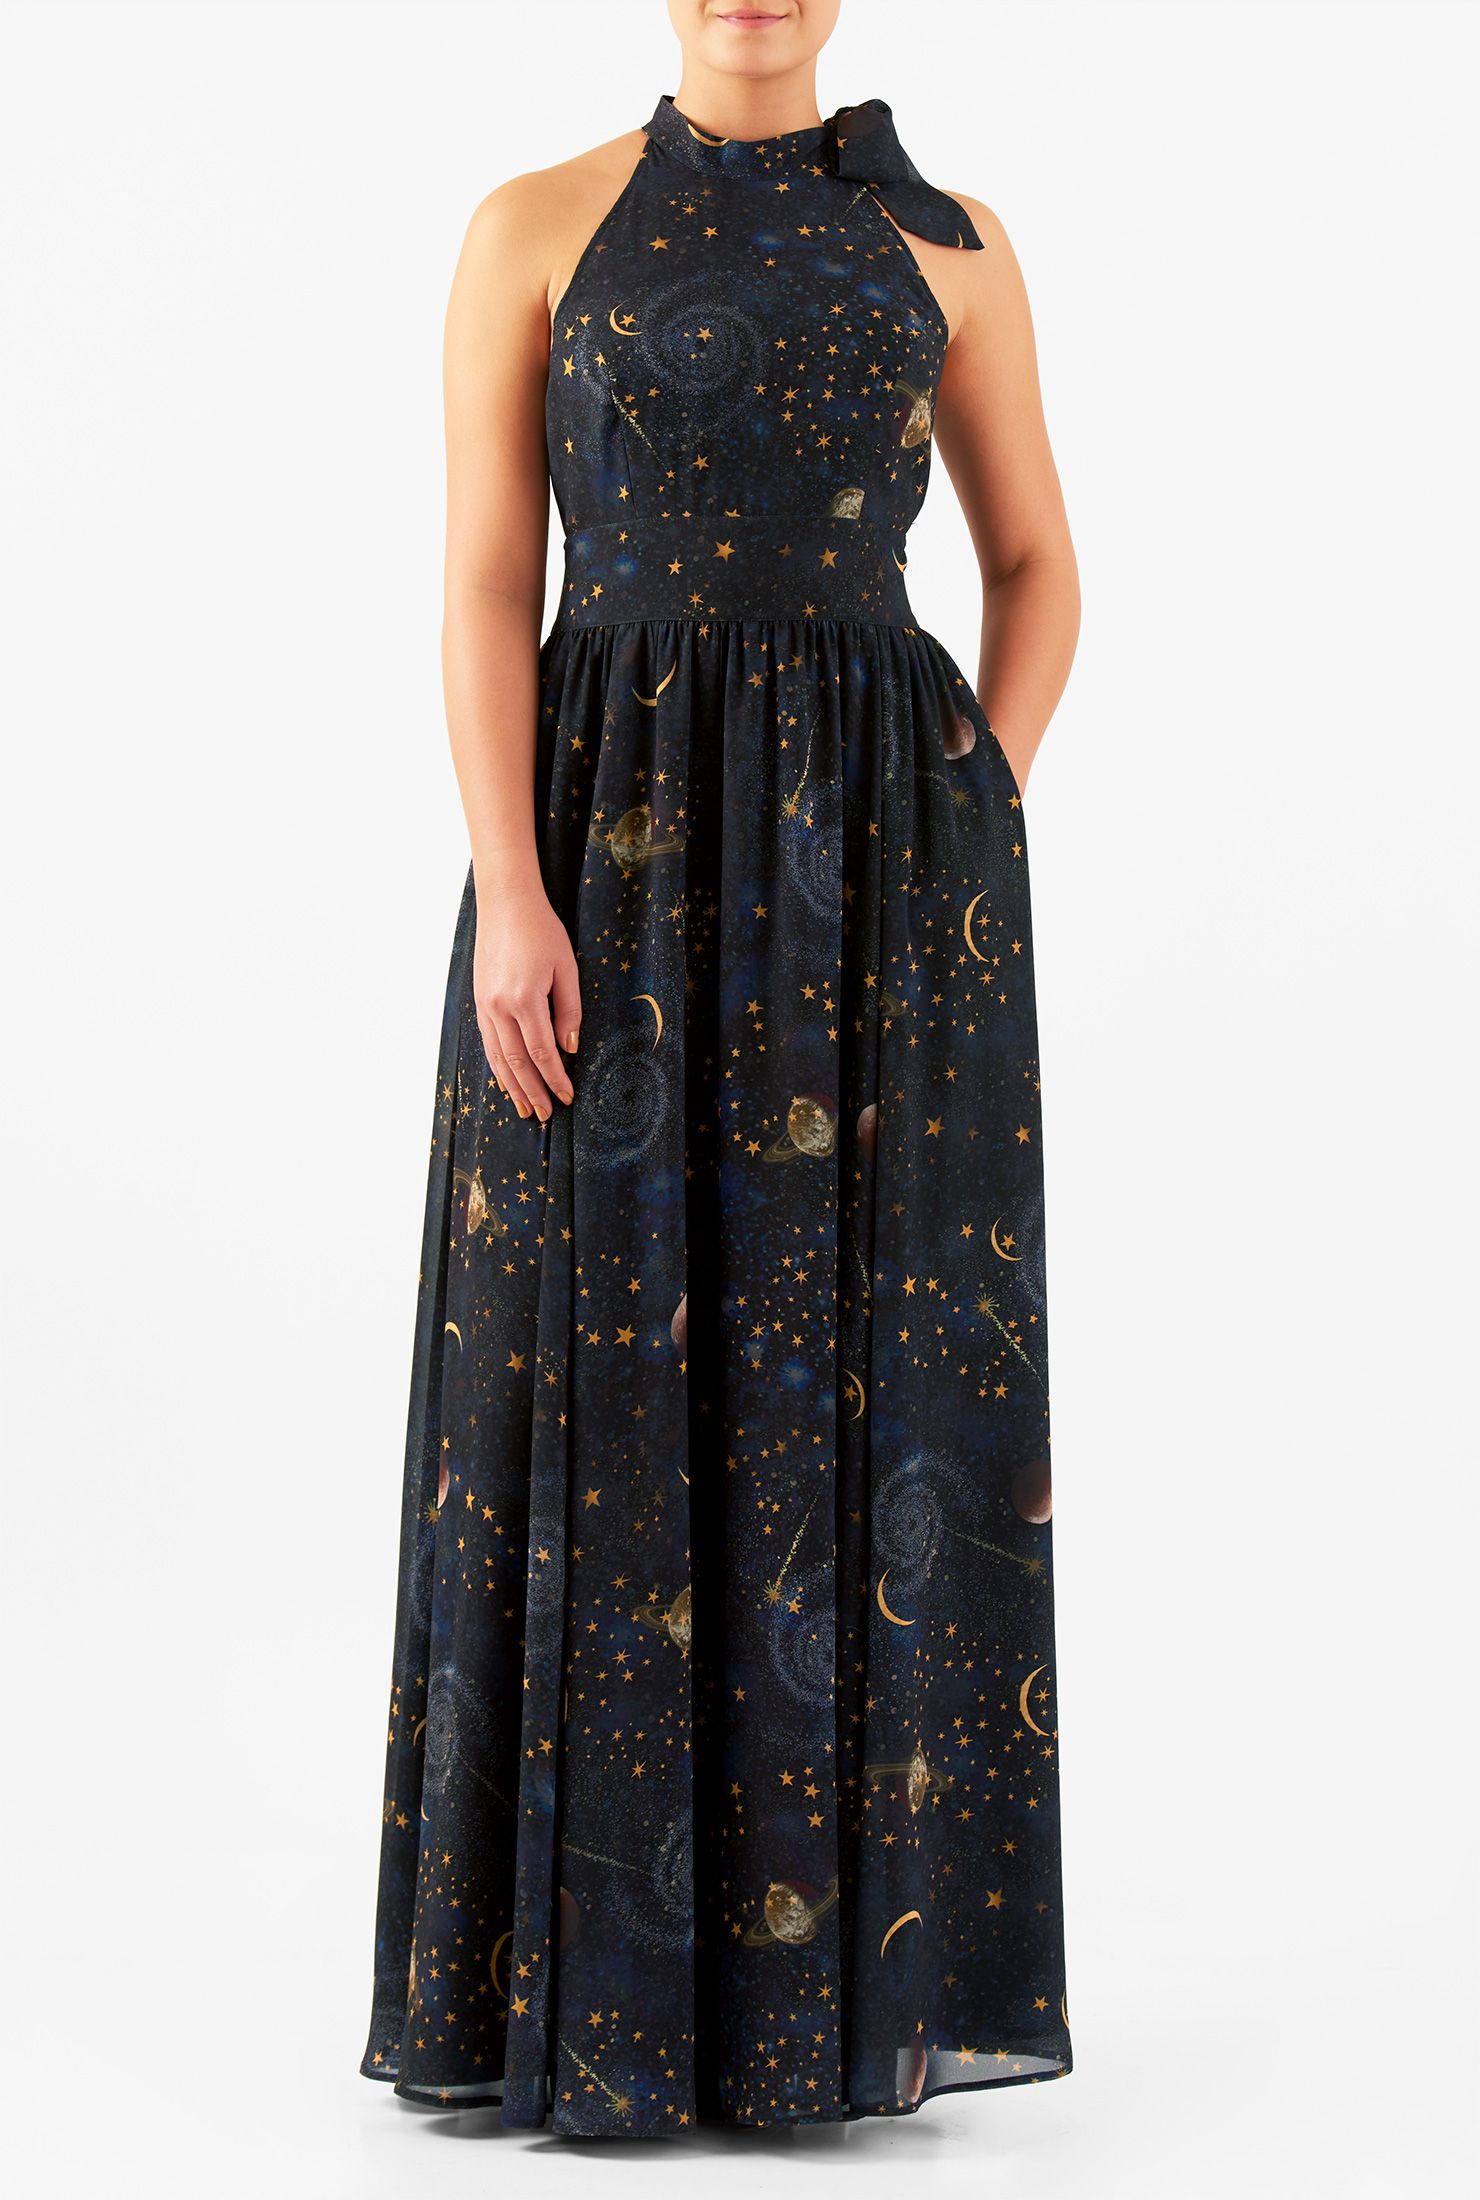 71de1c26d683 Our timeless halterneck maxi dress cut from constellation print georgette  will sculpt and smooth your silhouette to elegantly conceal with seam  detailing to ...